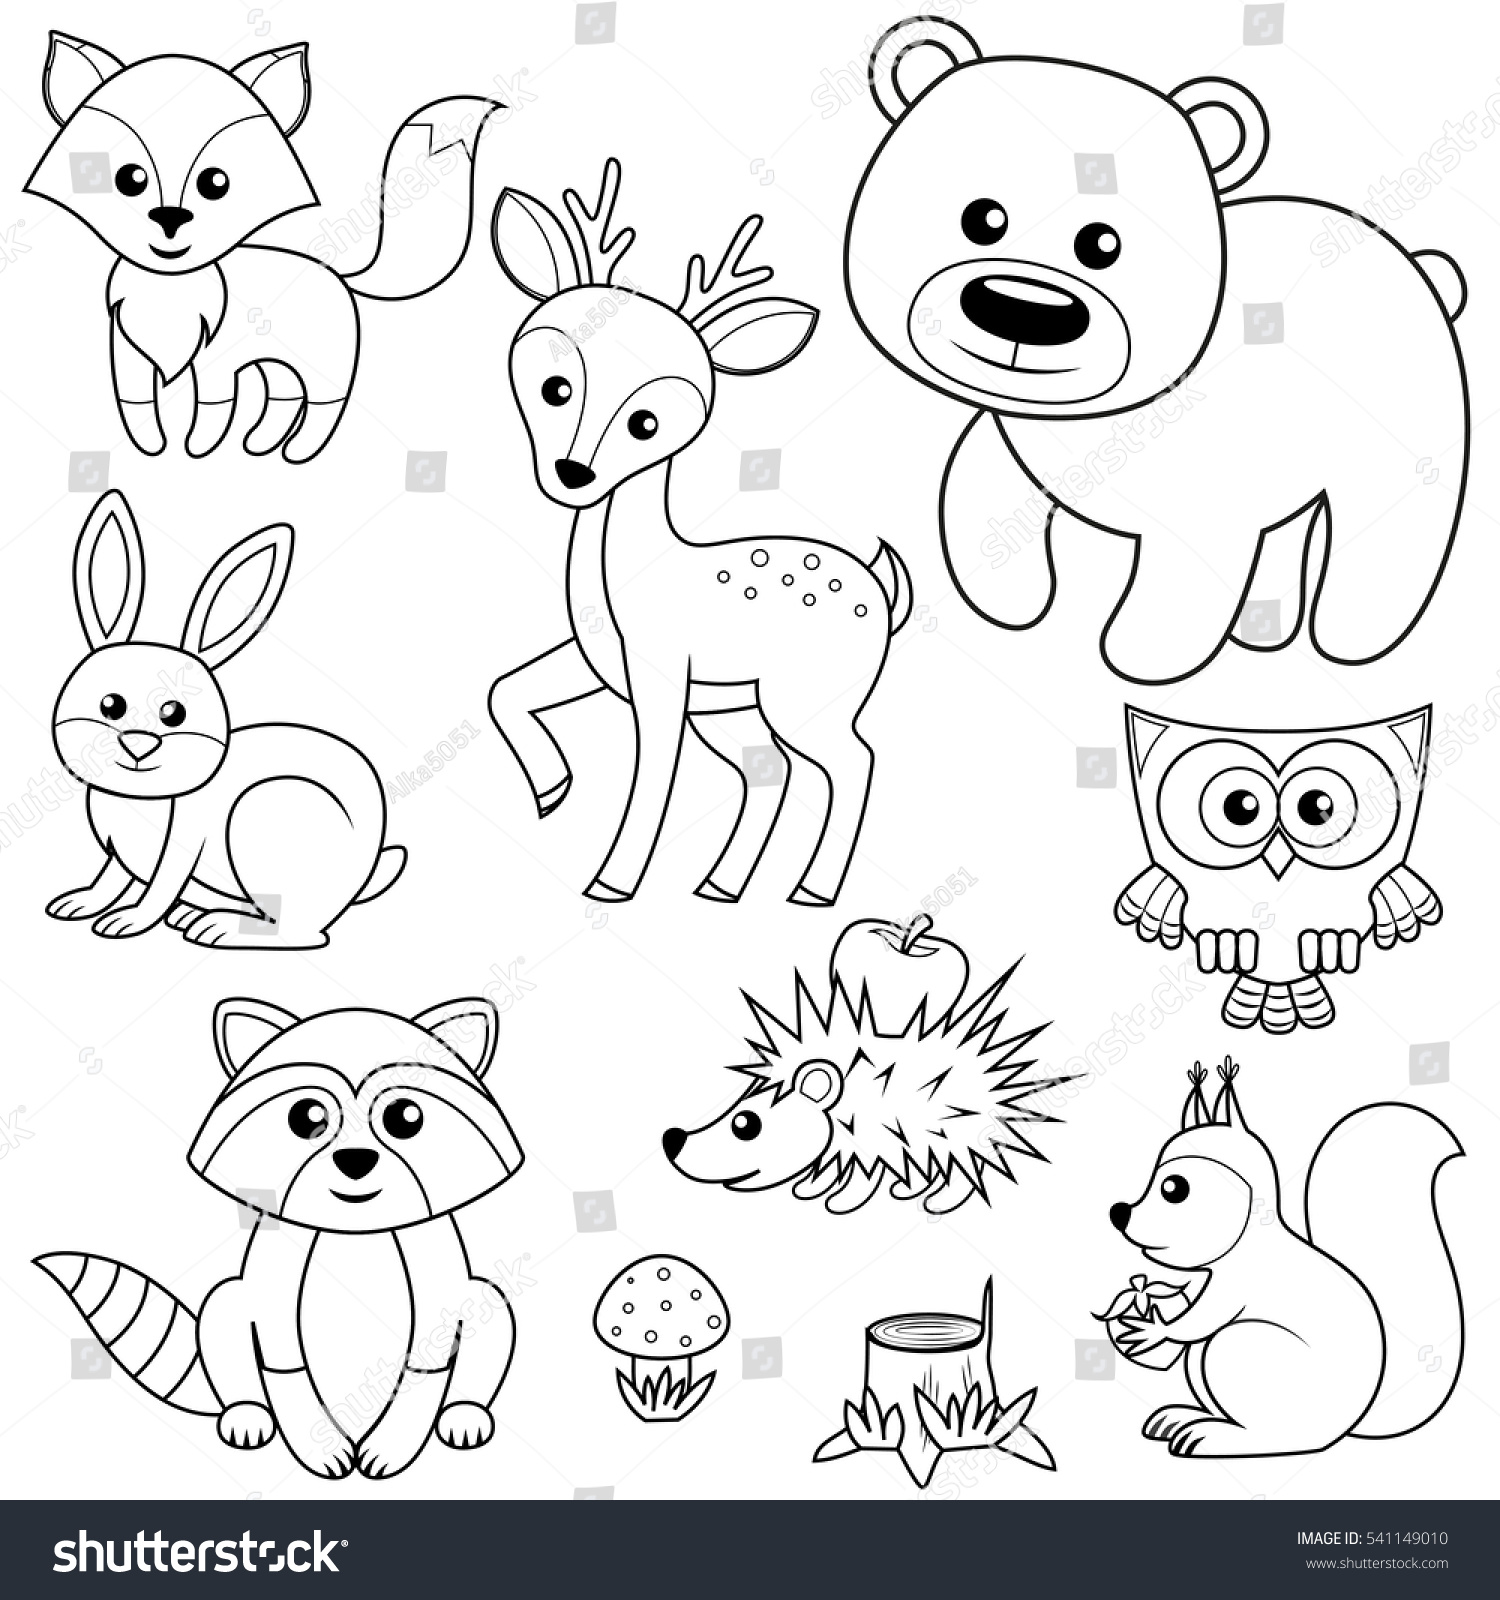 Line Drawings Of Woodland Animals : Forest animals fox bear raccon hare stock vector